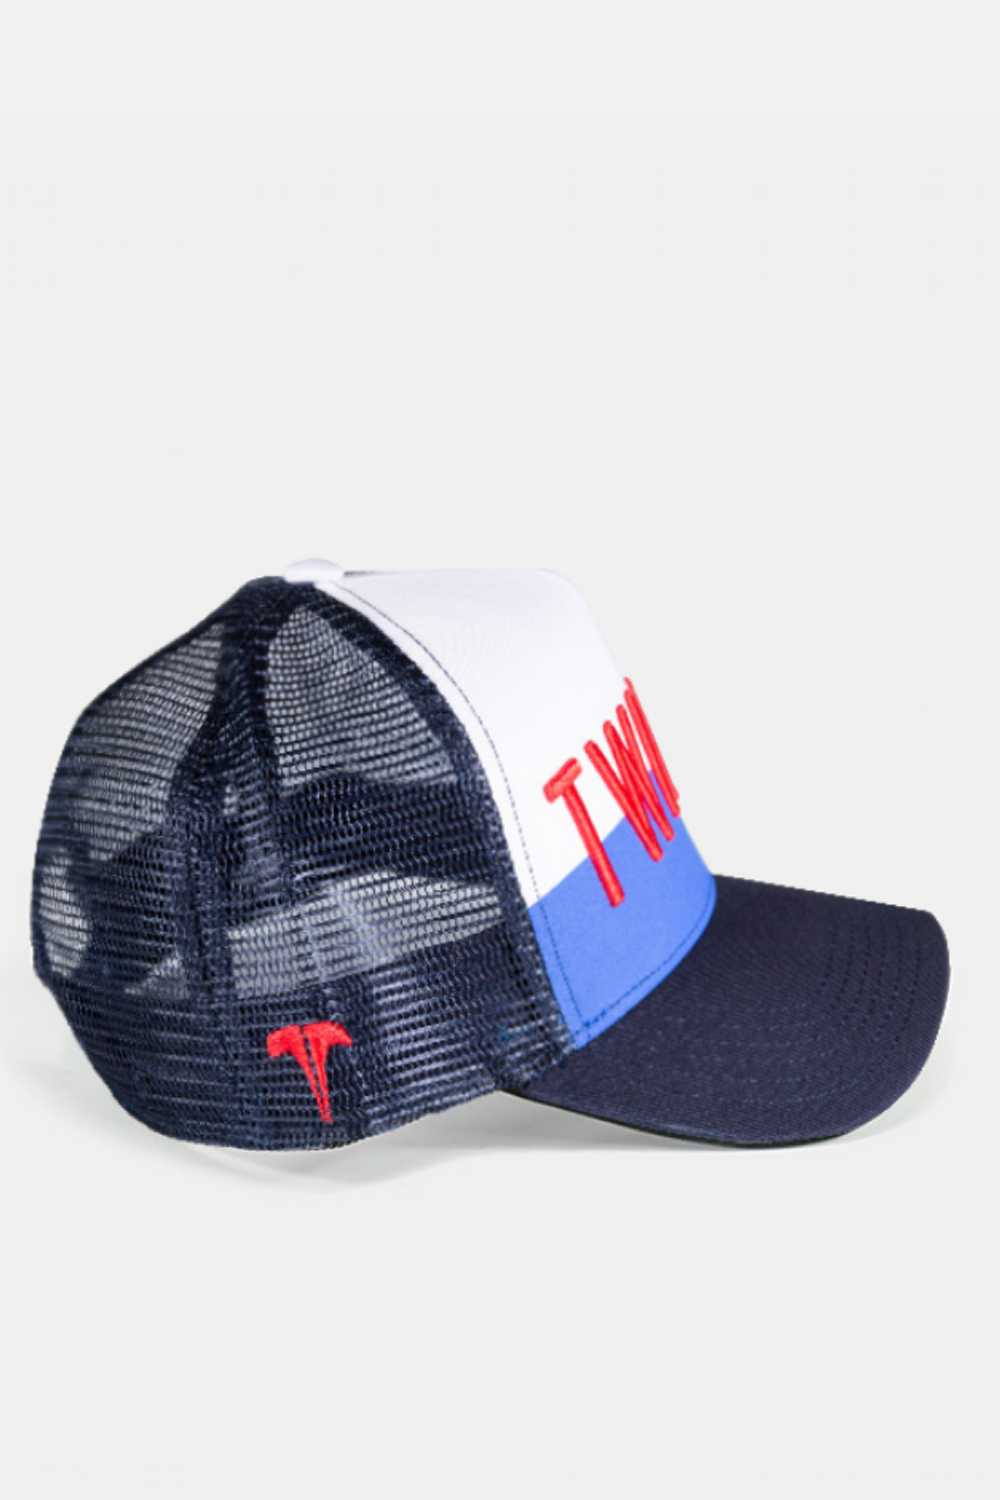 Twinzz 3D Mesh Trucker Cap -  Navy/White/Red - 2